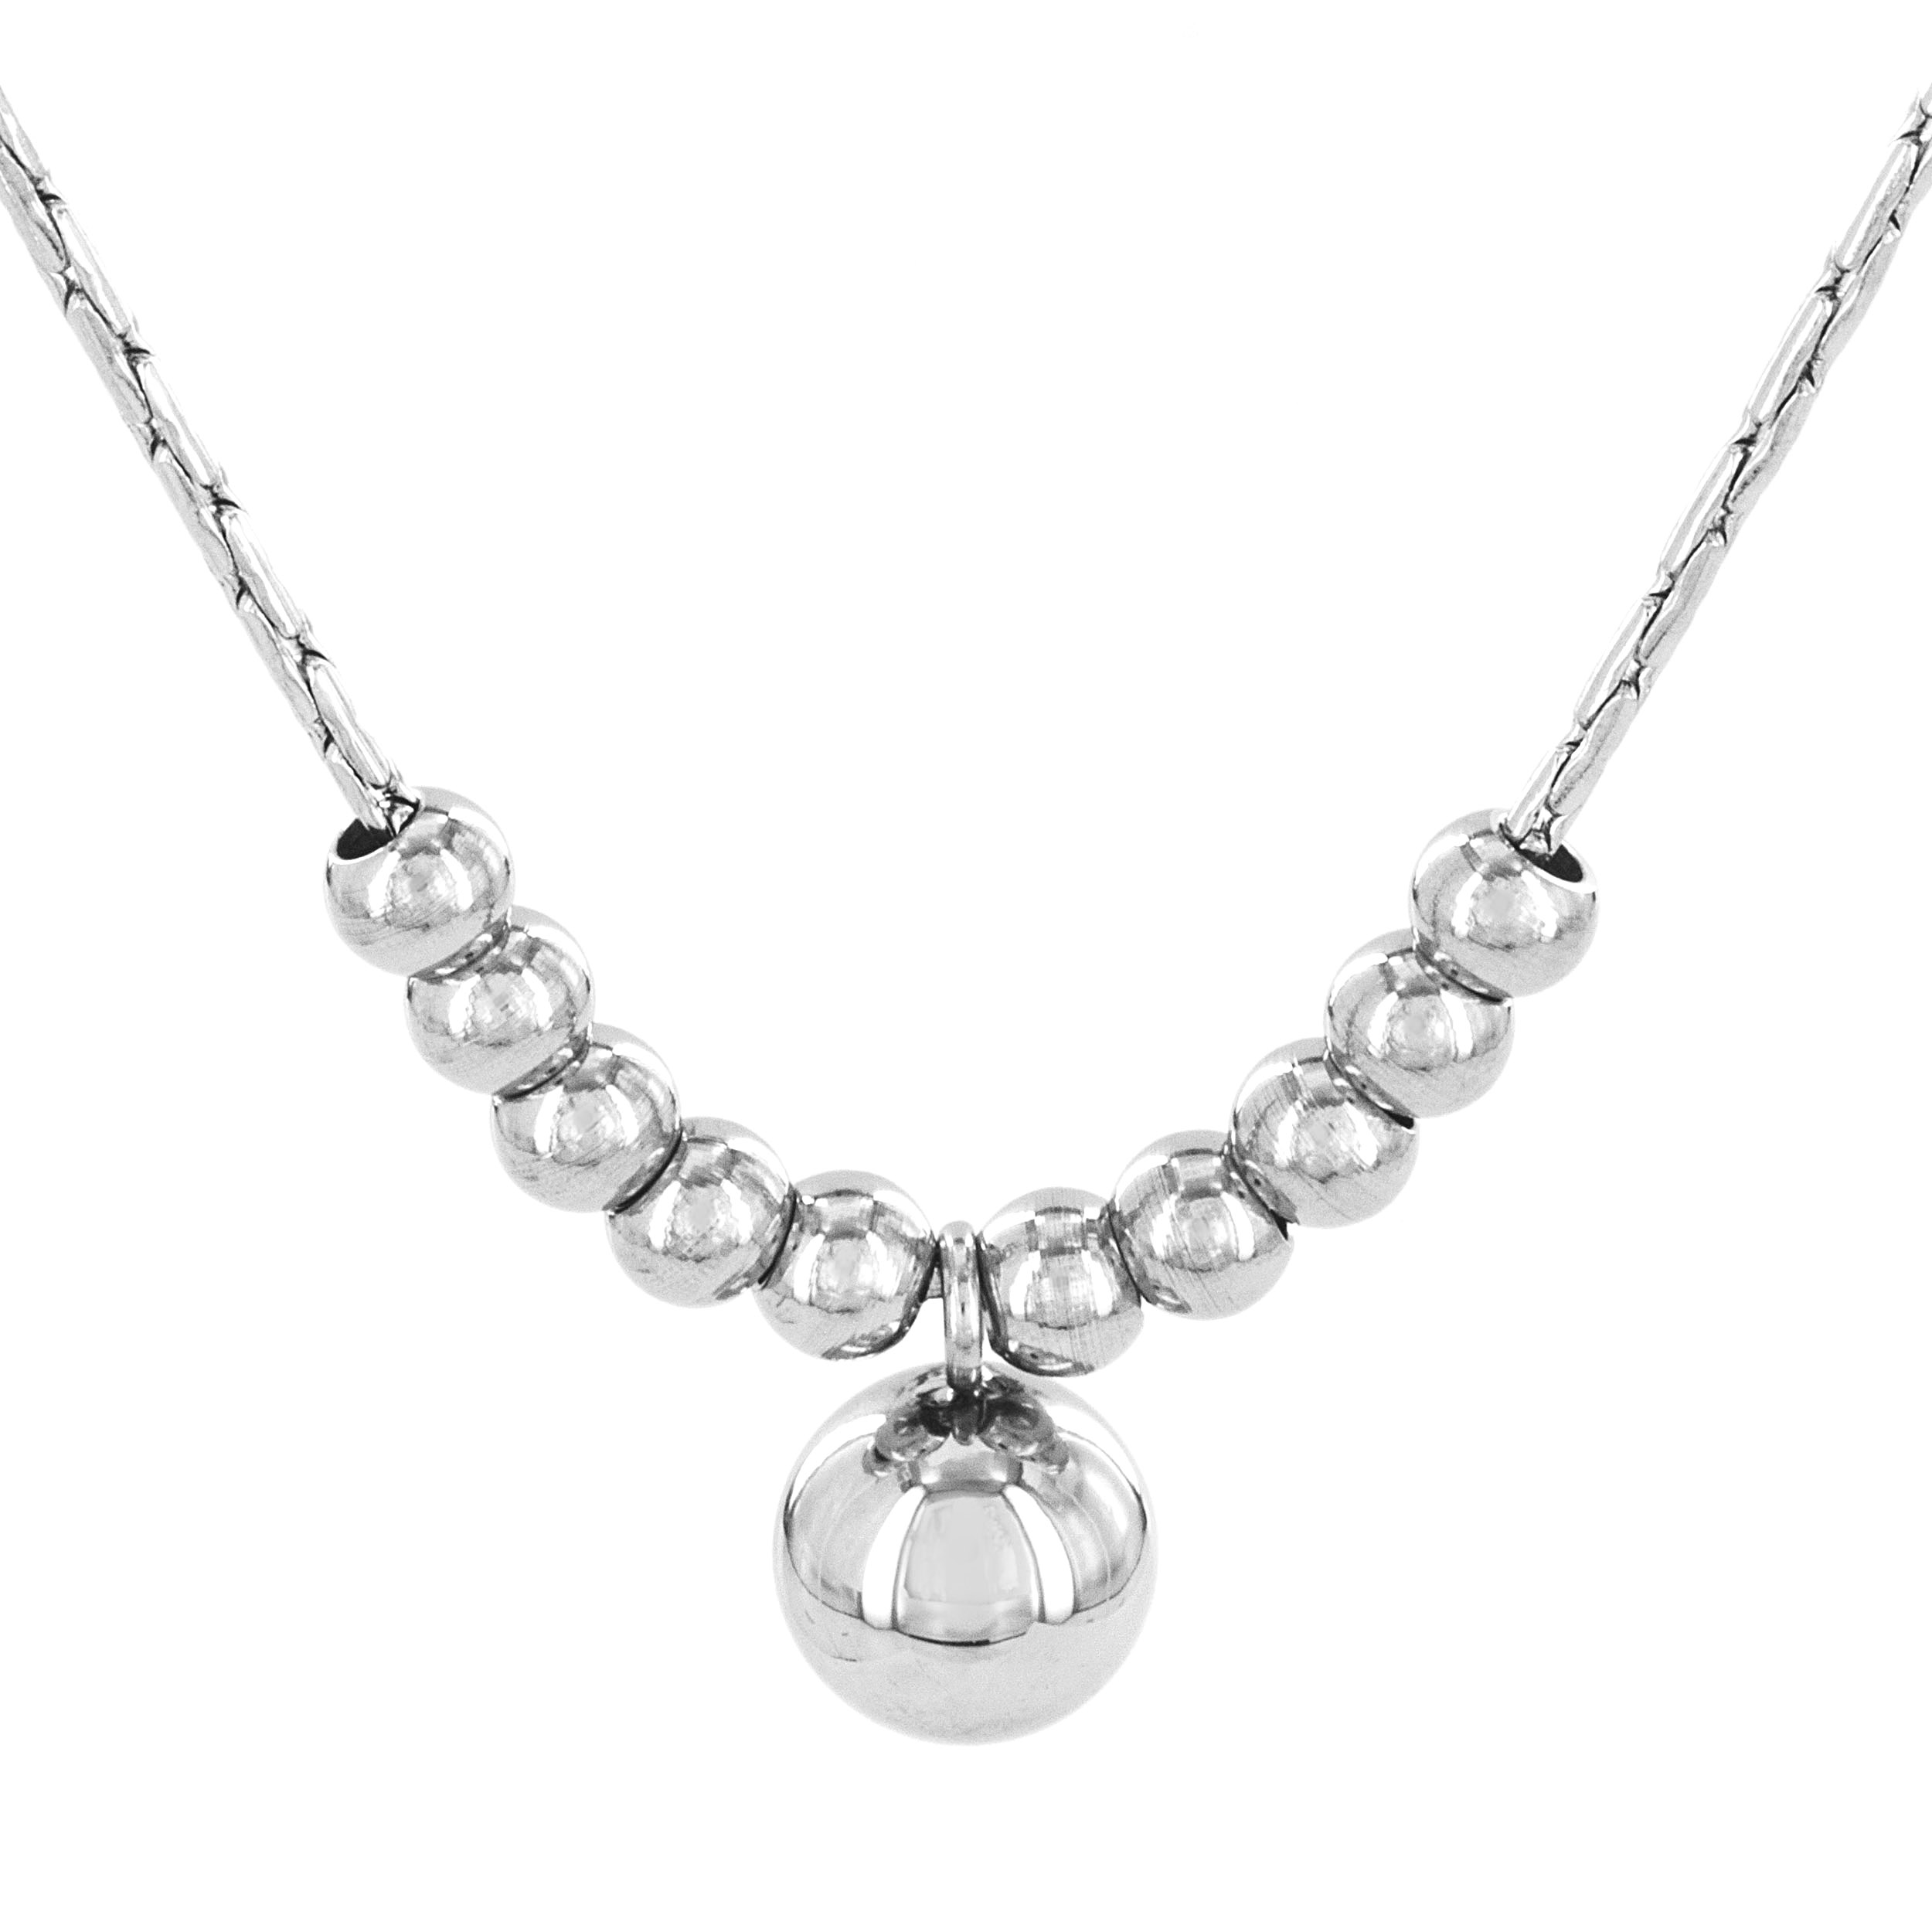 Stainless Steel Polished Sphere Beads Pendant Necklace